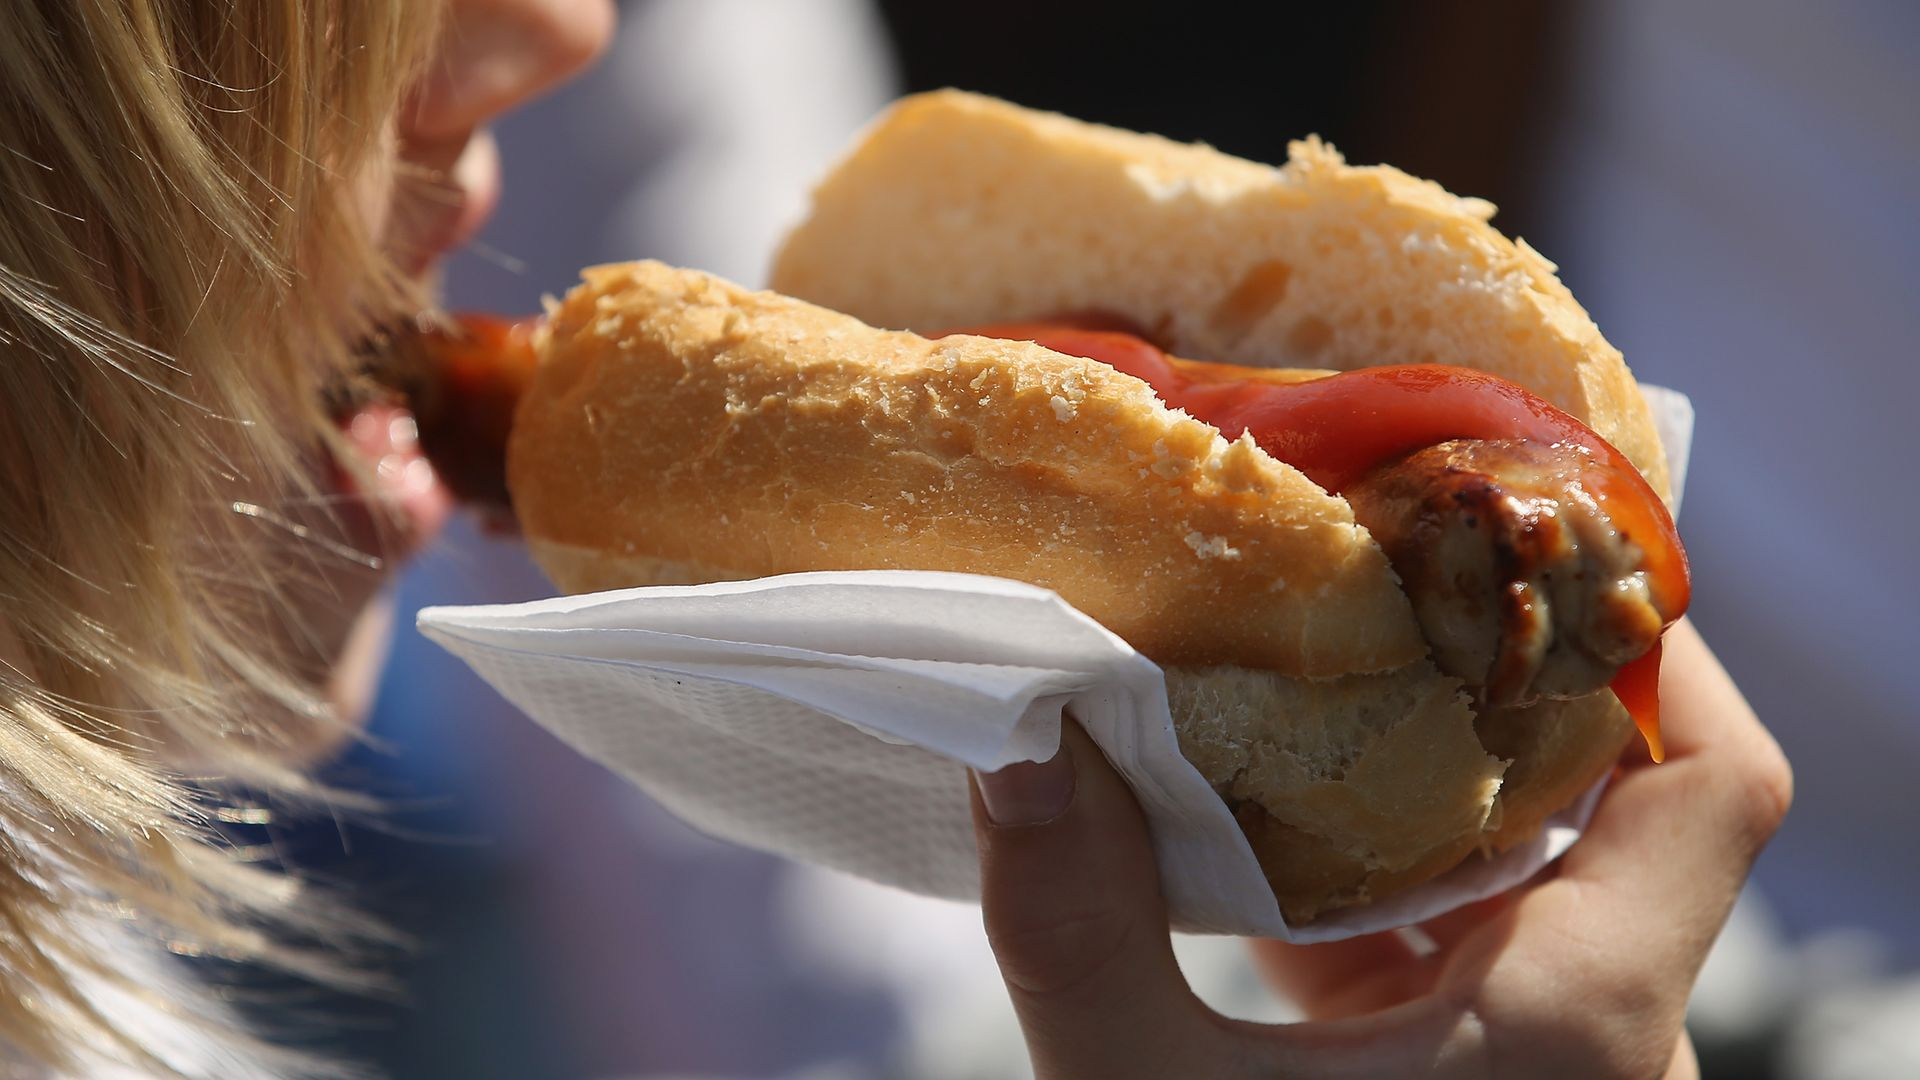 Bratwursts are being offered as an incentive to make up the Covid vaccine